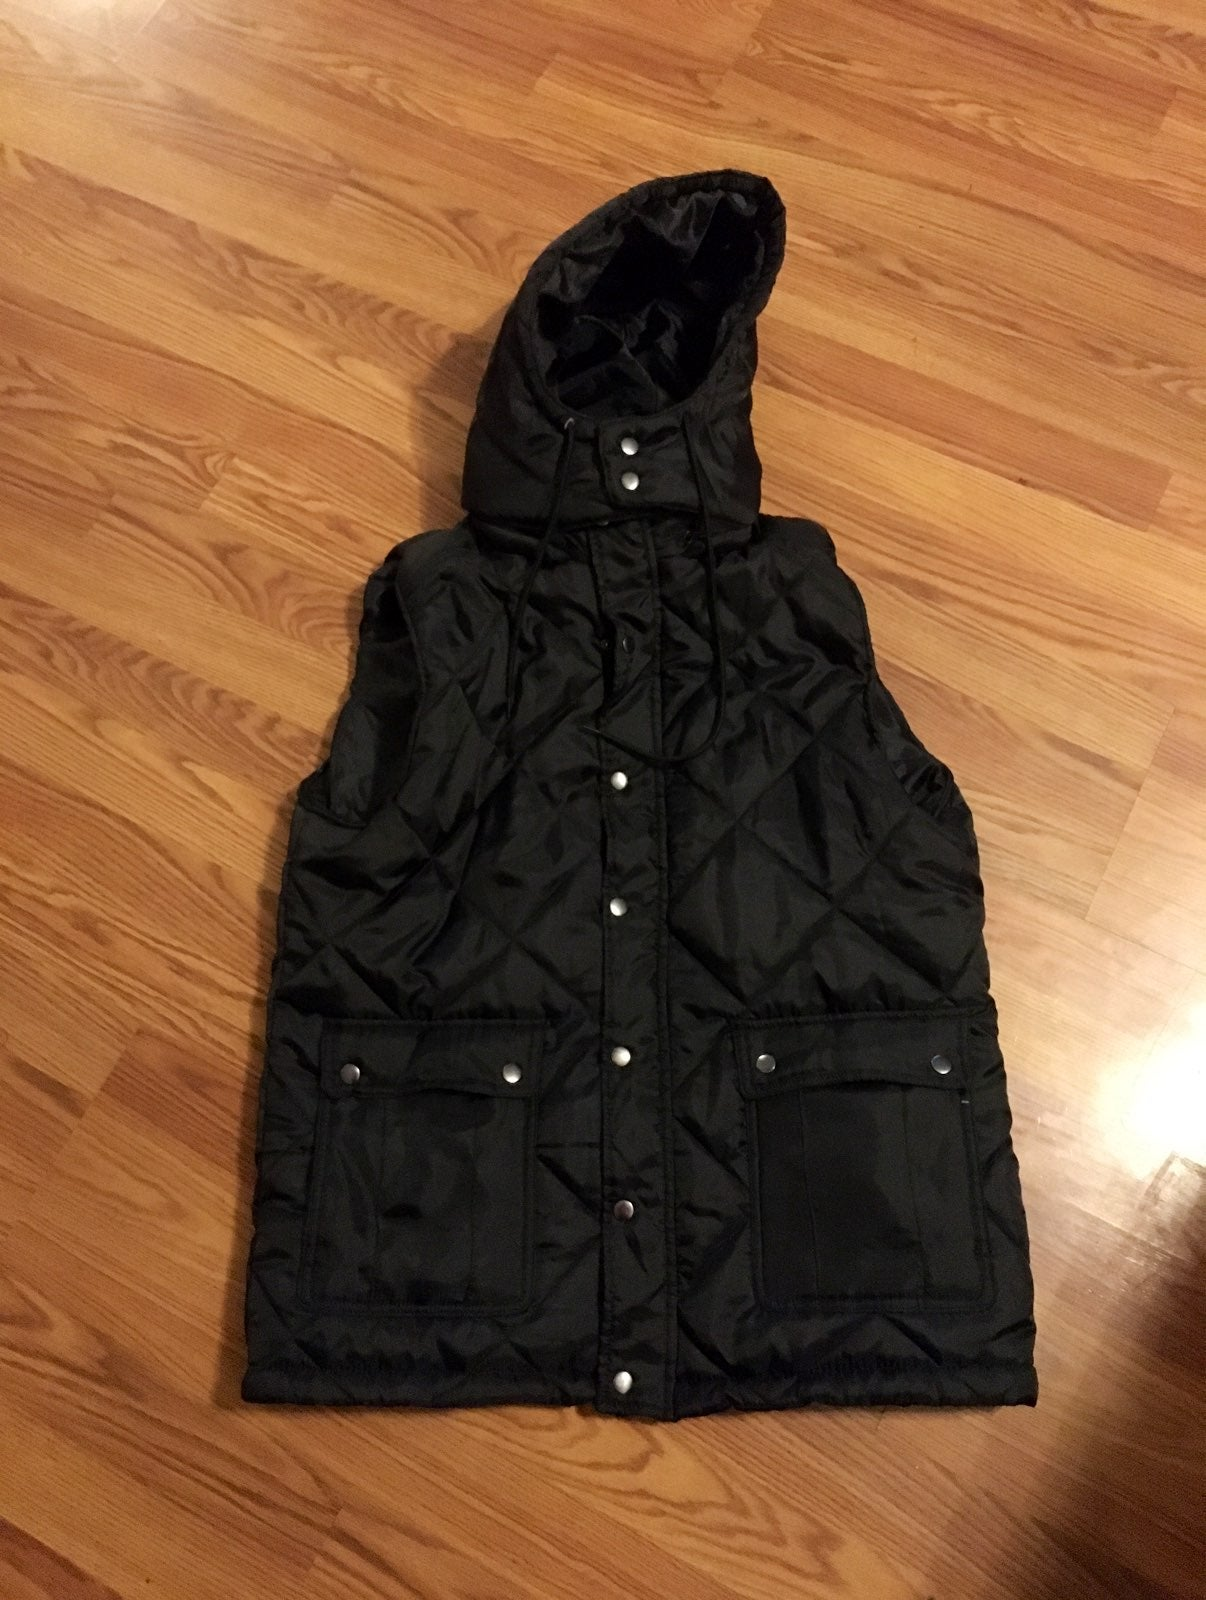 Mens new Puffer Vest size X-large